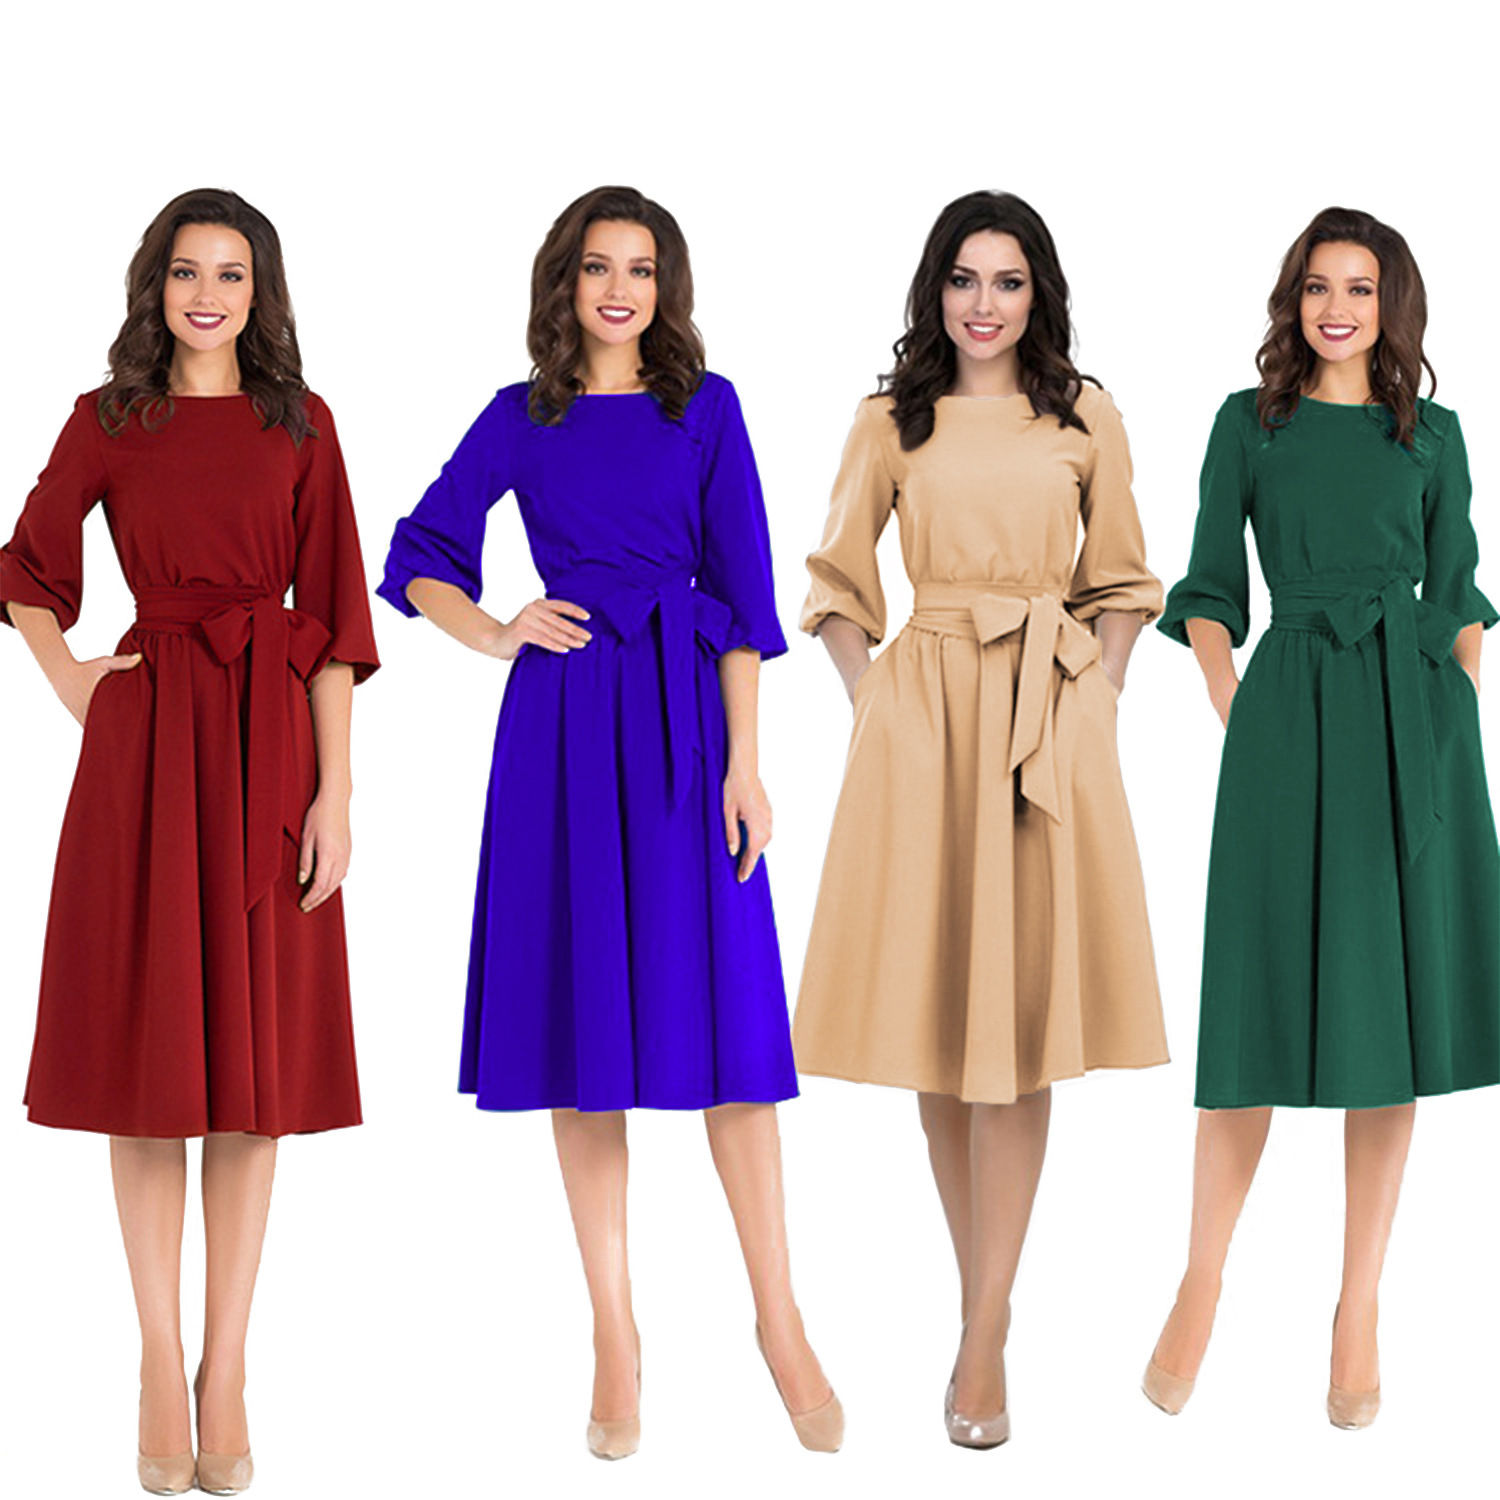 Madam Clothing OWLPRINCESS The New 2019 Round Collar Pure Color Waist Long-sleeved Dress